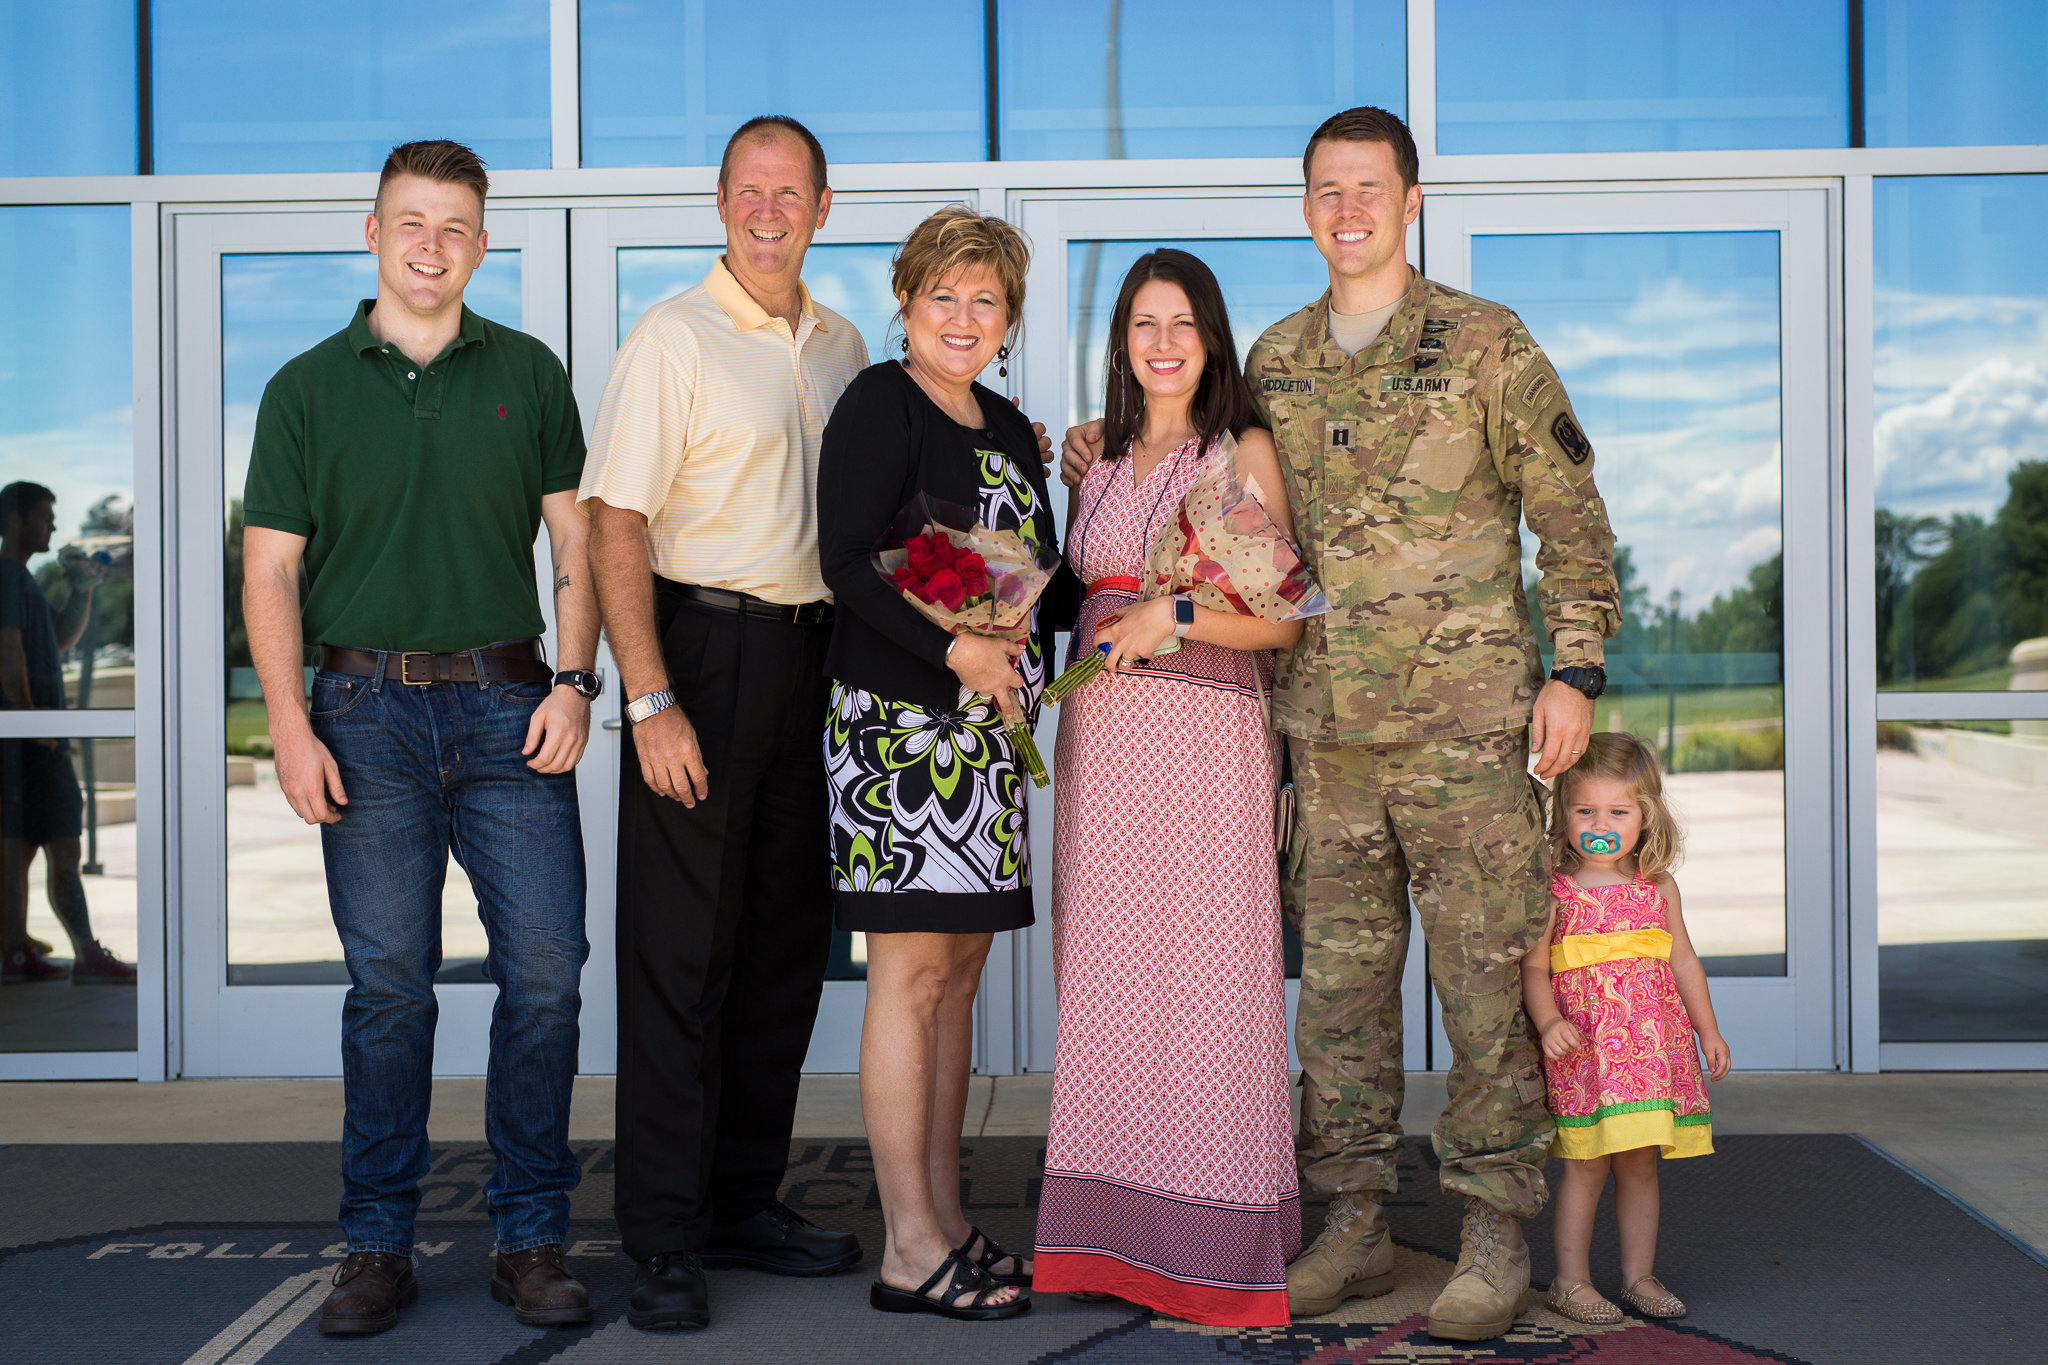 Justin Middleton (second on right) with family